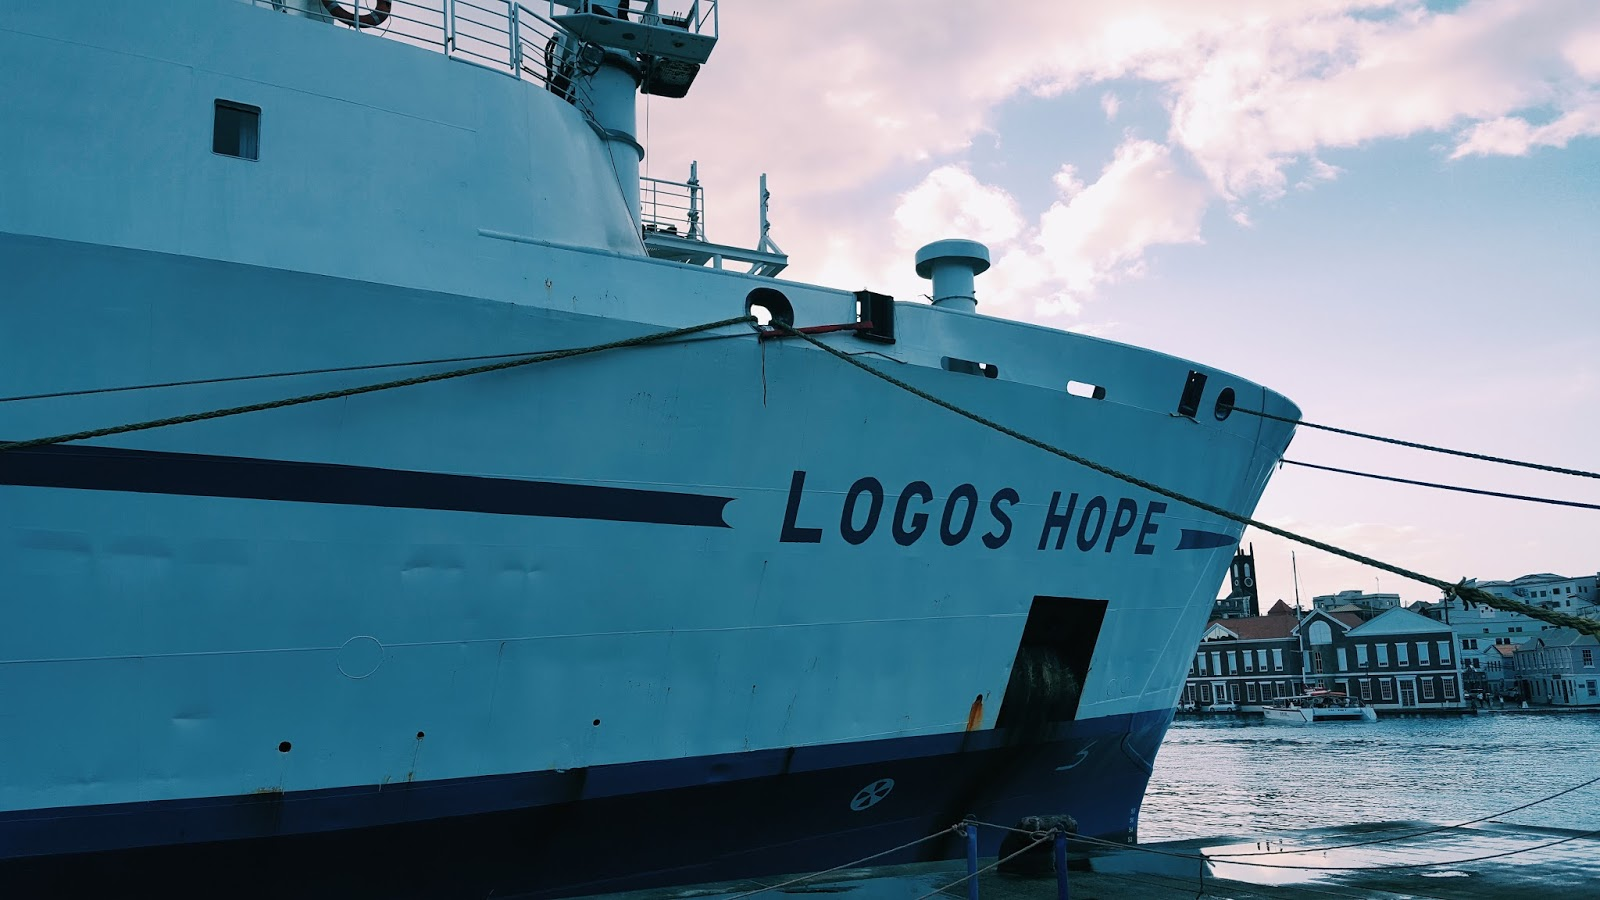 Book Boat in GND : Visiting the Logos Hope